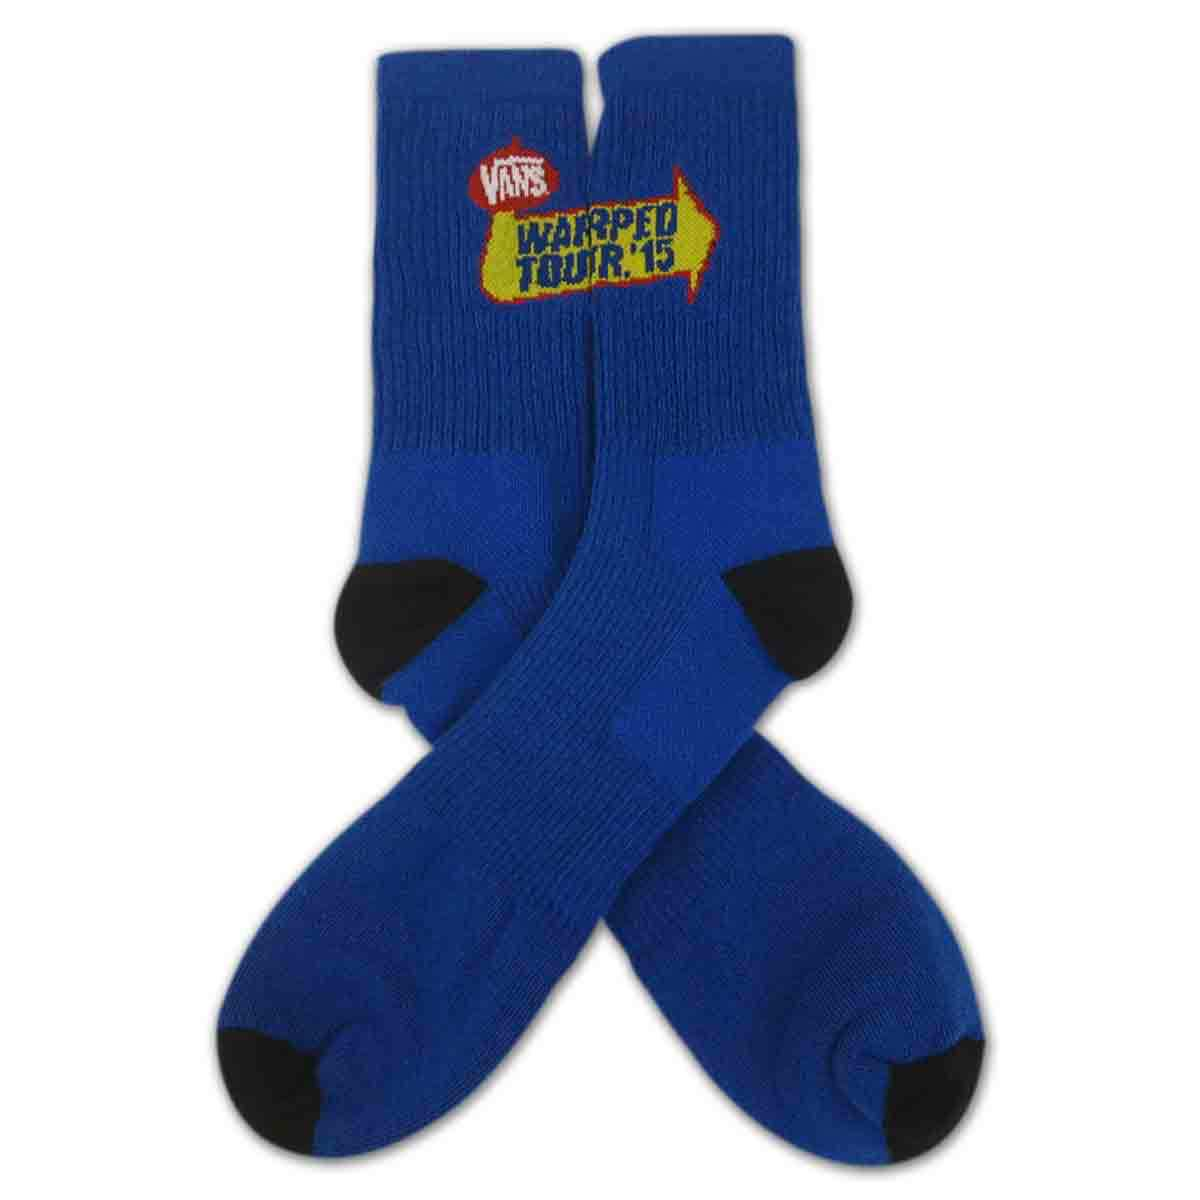 Warped Tour 2015 Socks